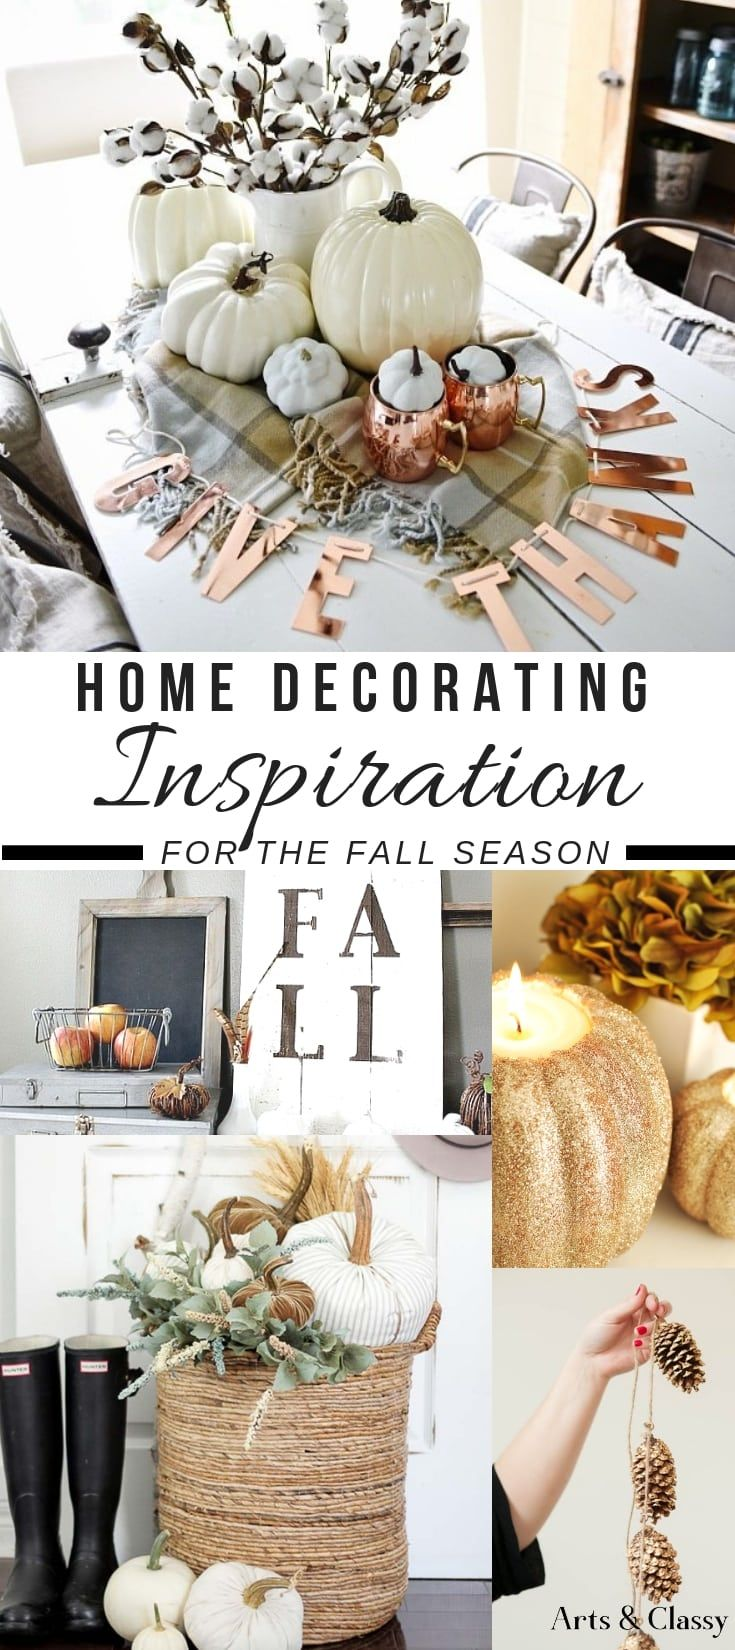 Home Decorating Inspiration For The Fall Season